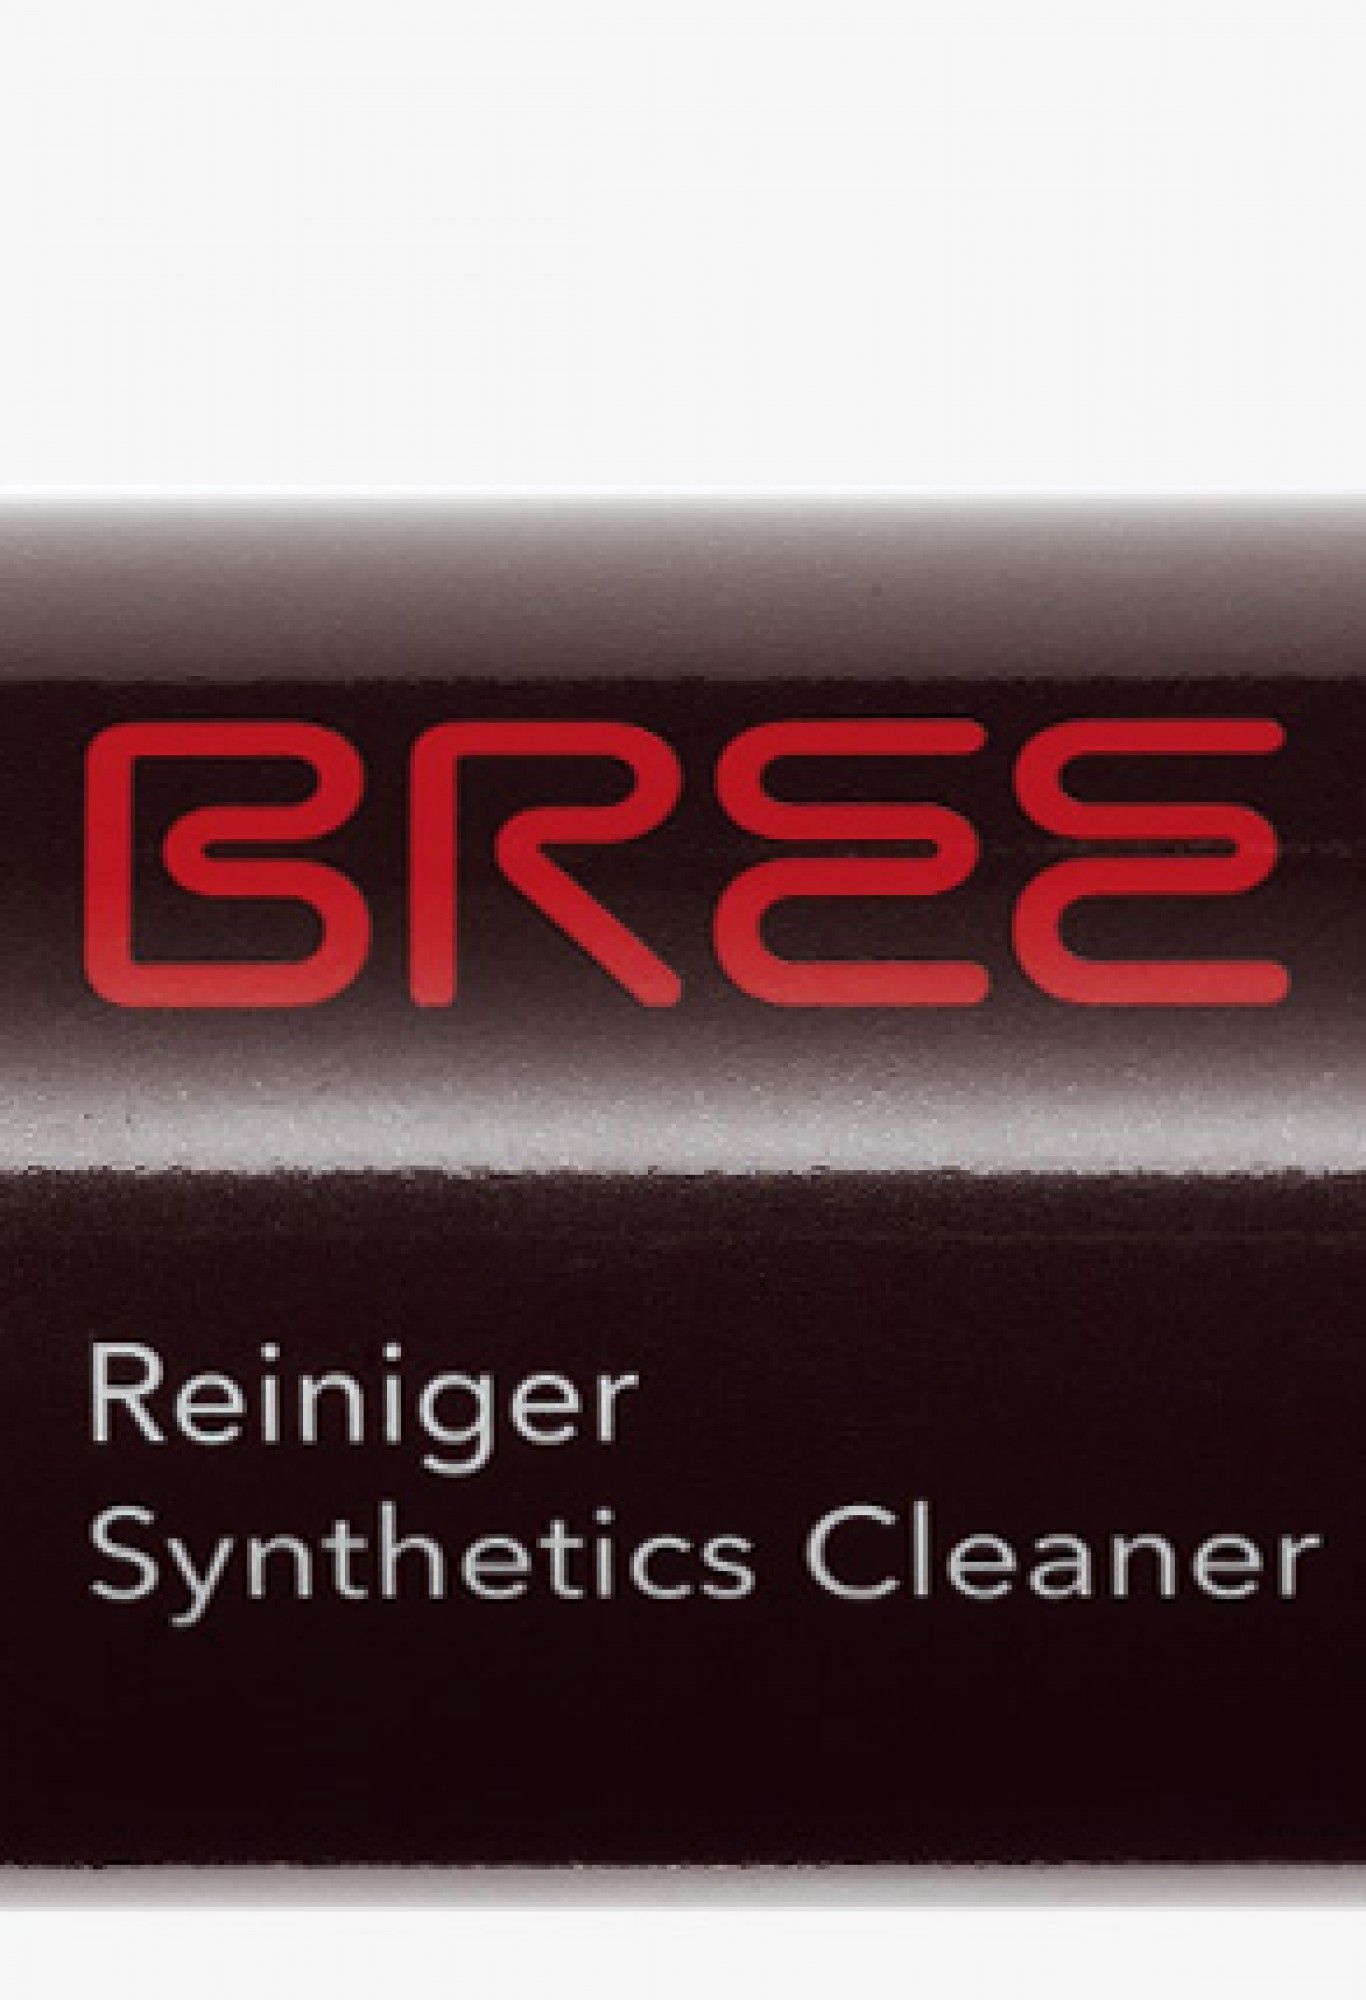 Synthetics Cleaner